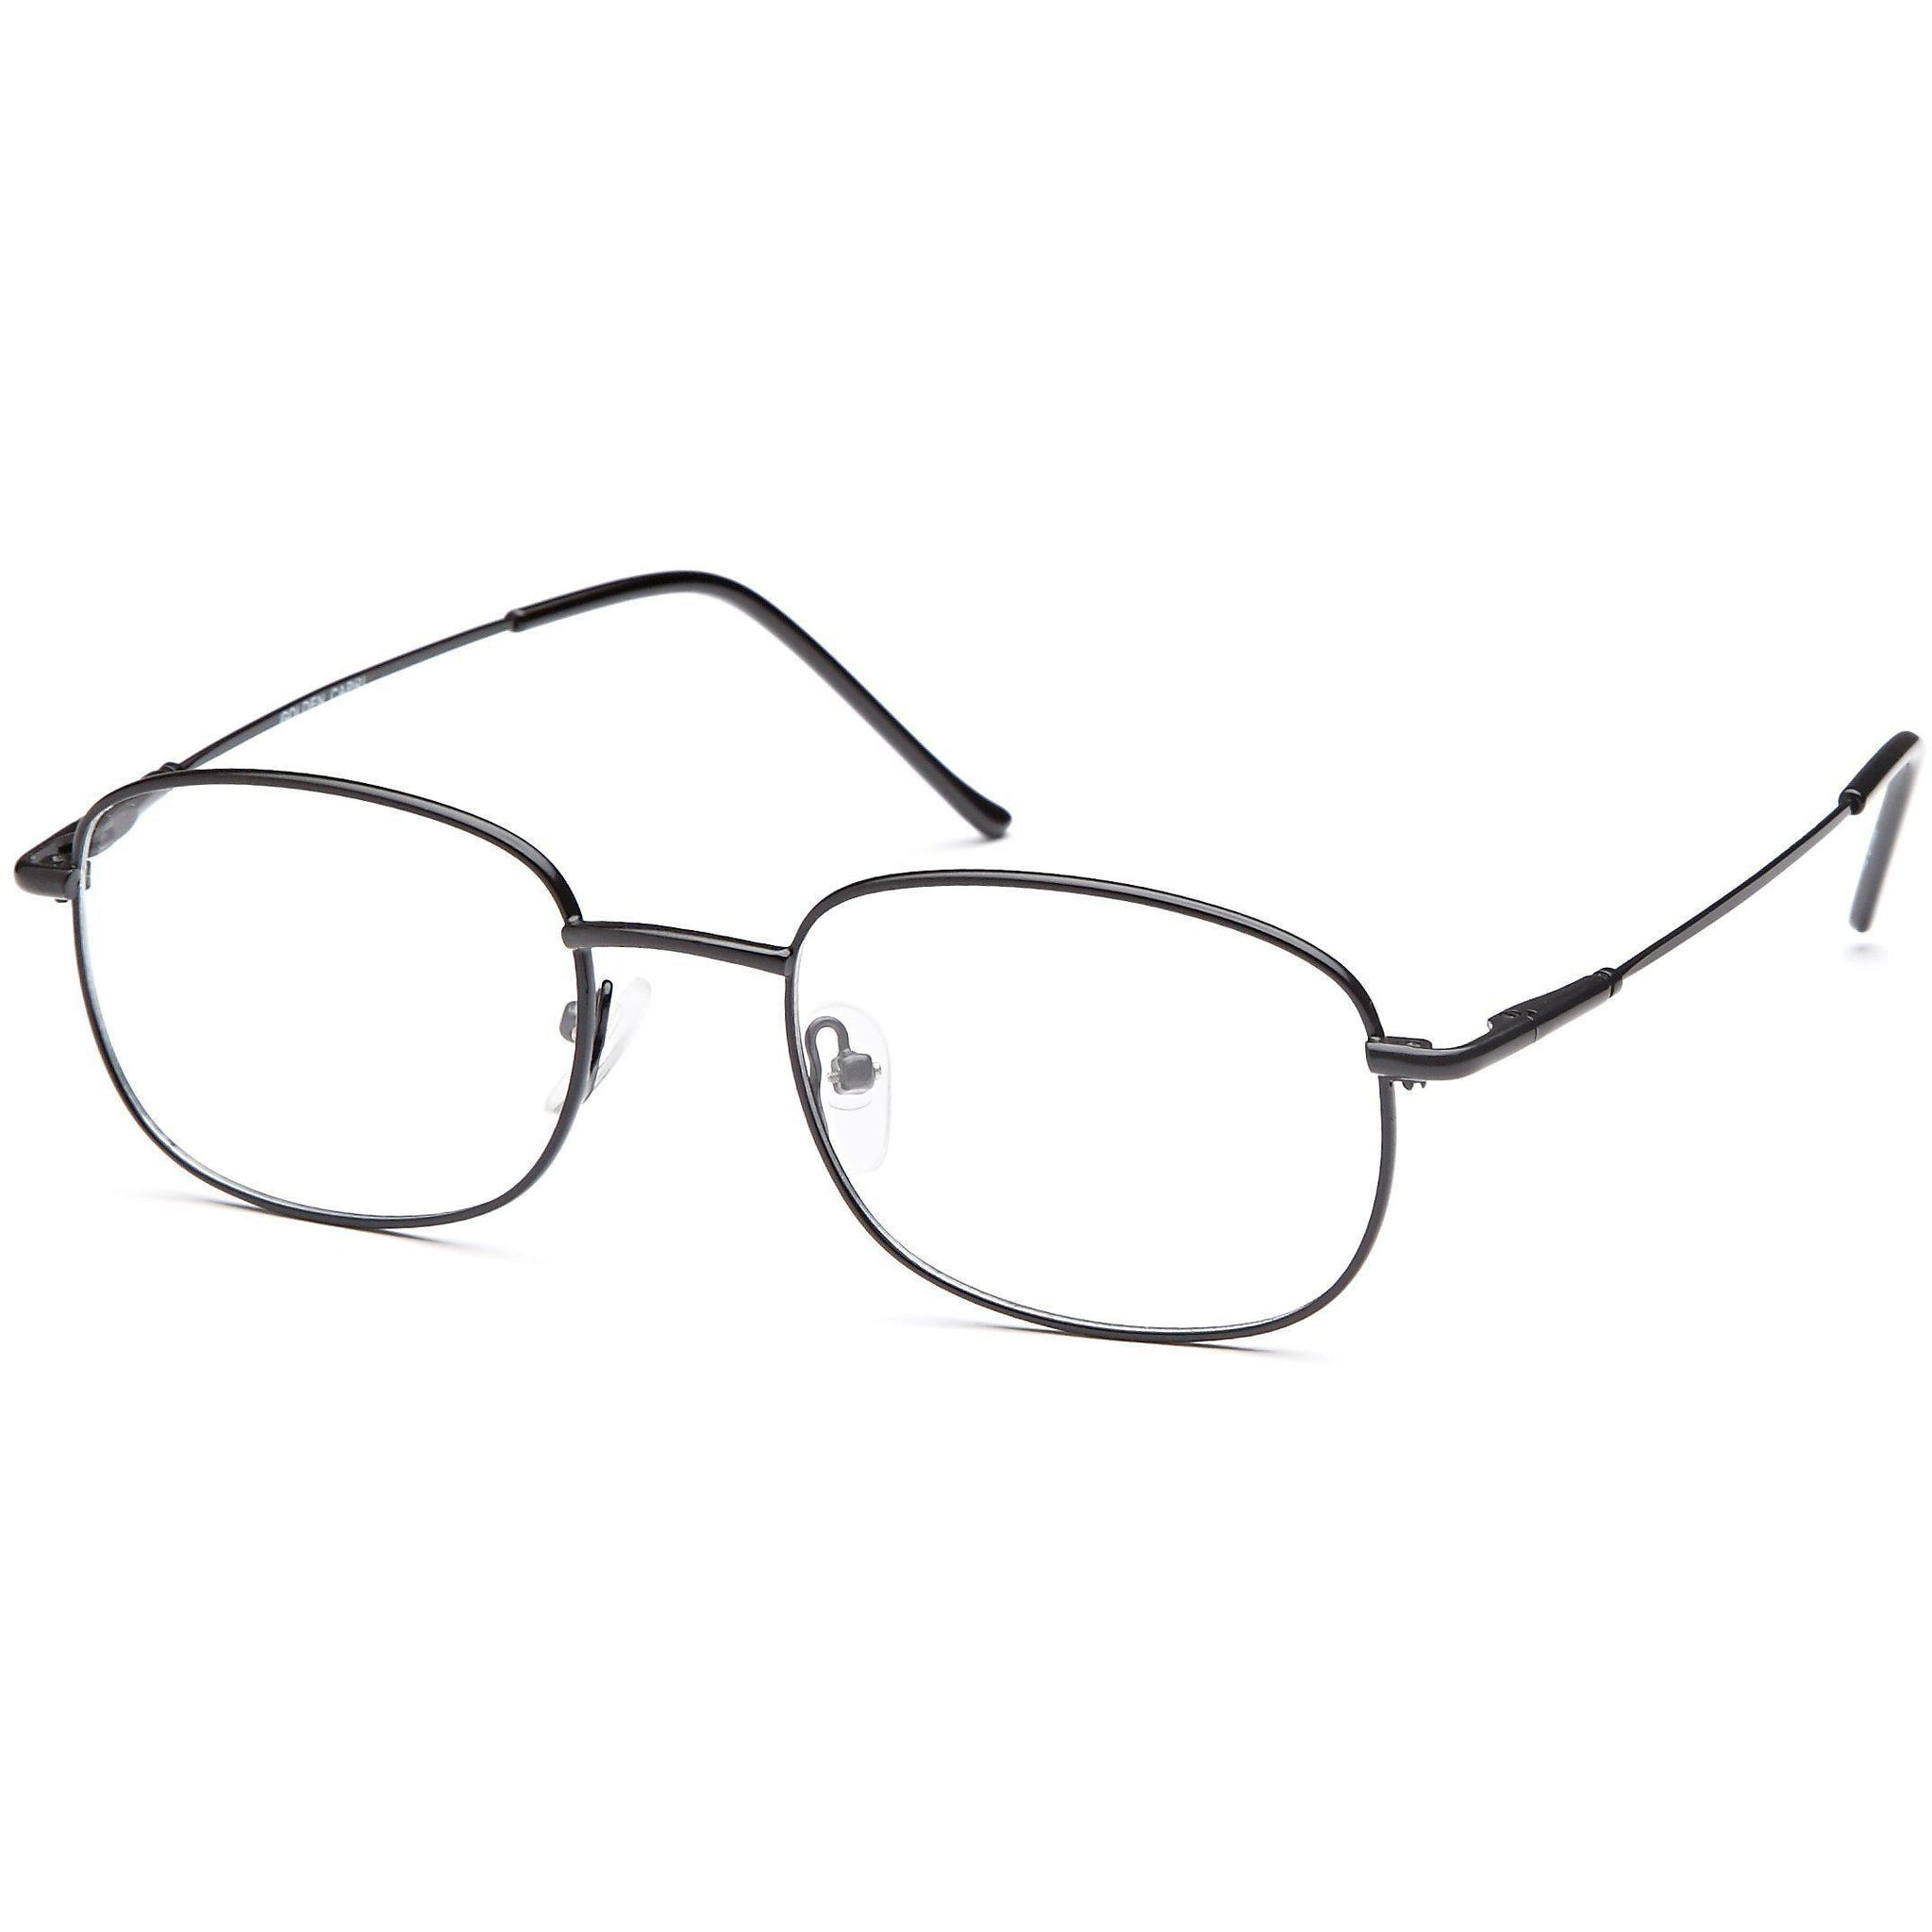 Classics Prescription Glasses GOLDEN Frames